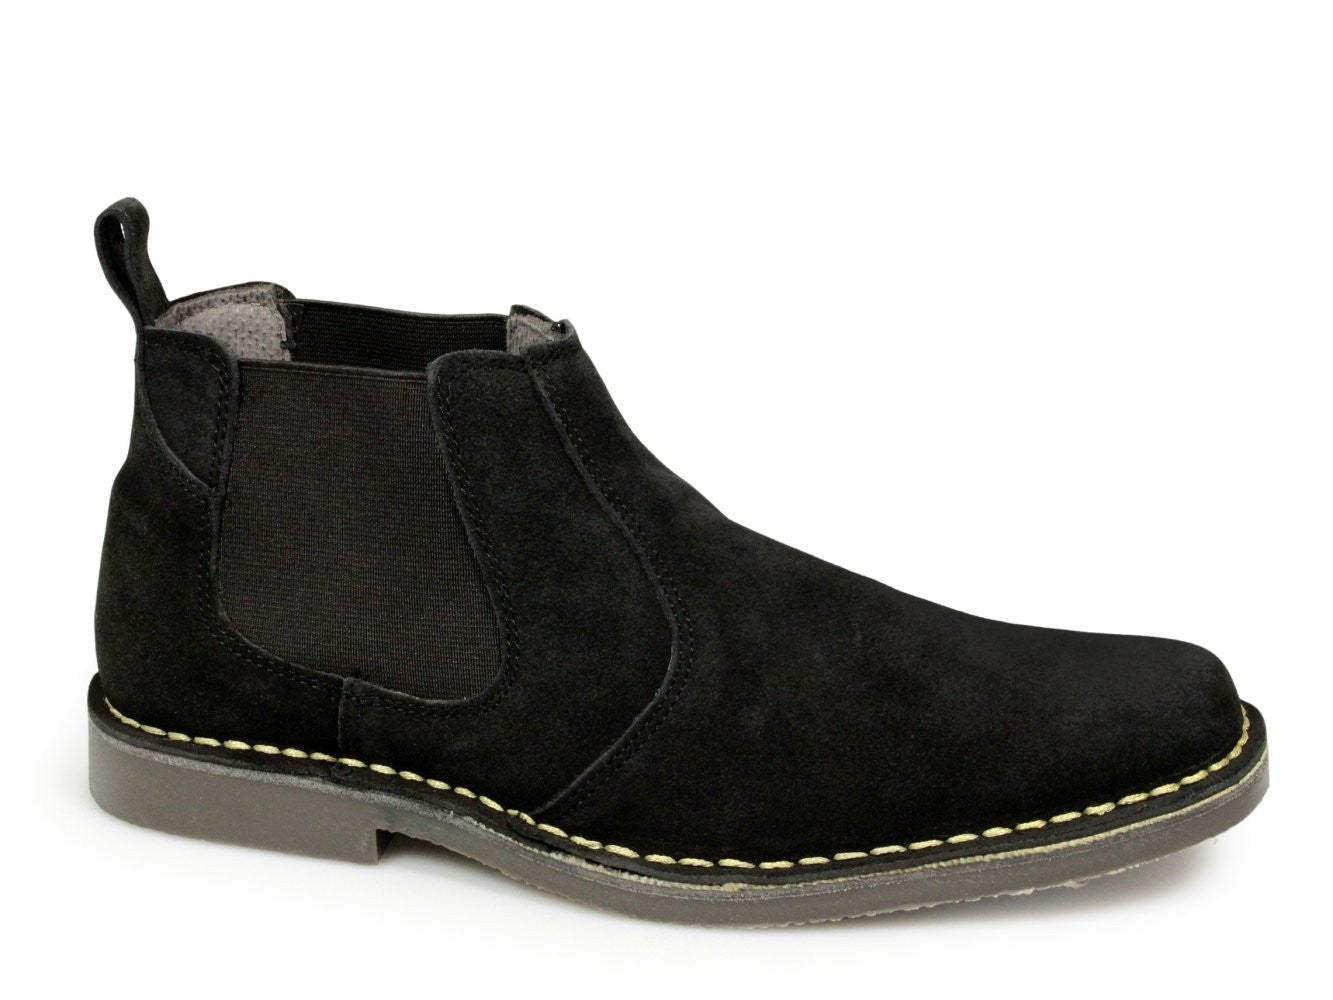 Roamers Black Suede Chelsea Boots